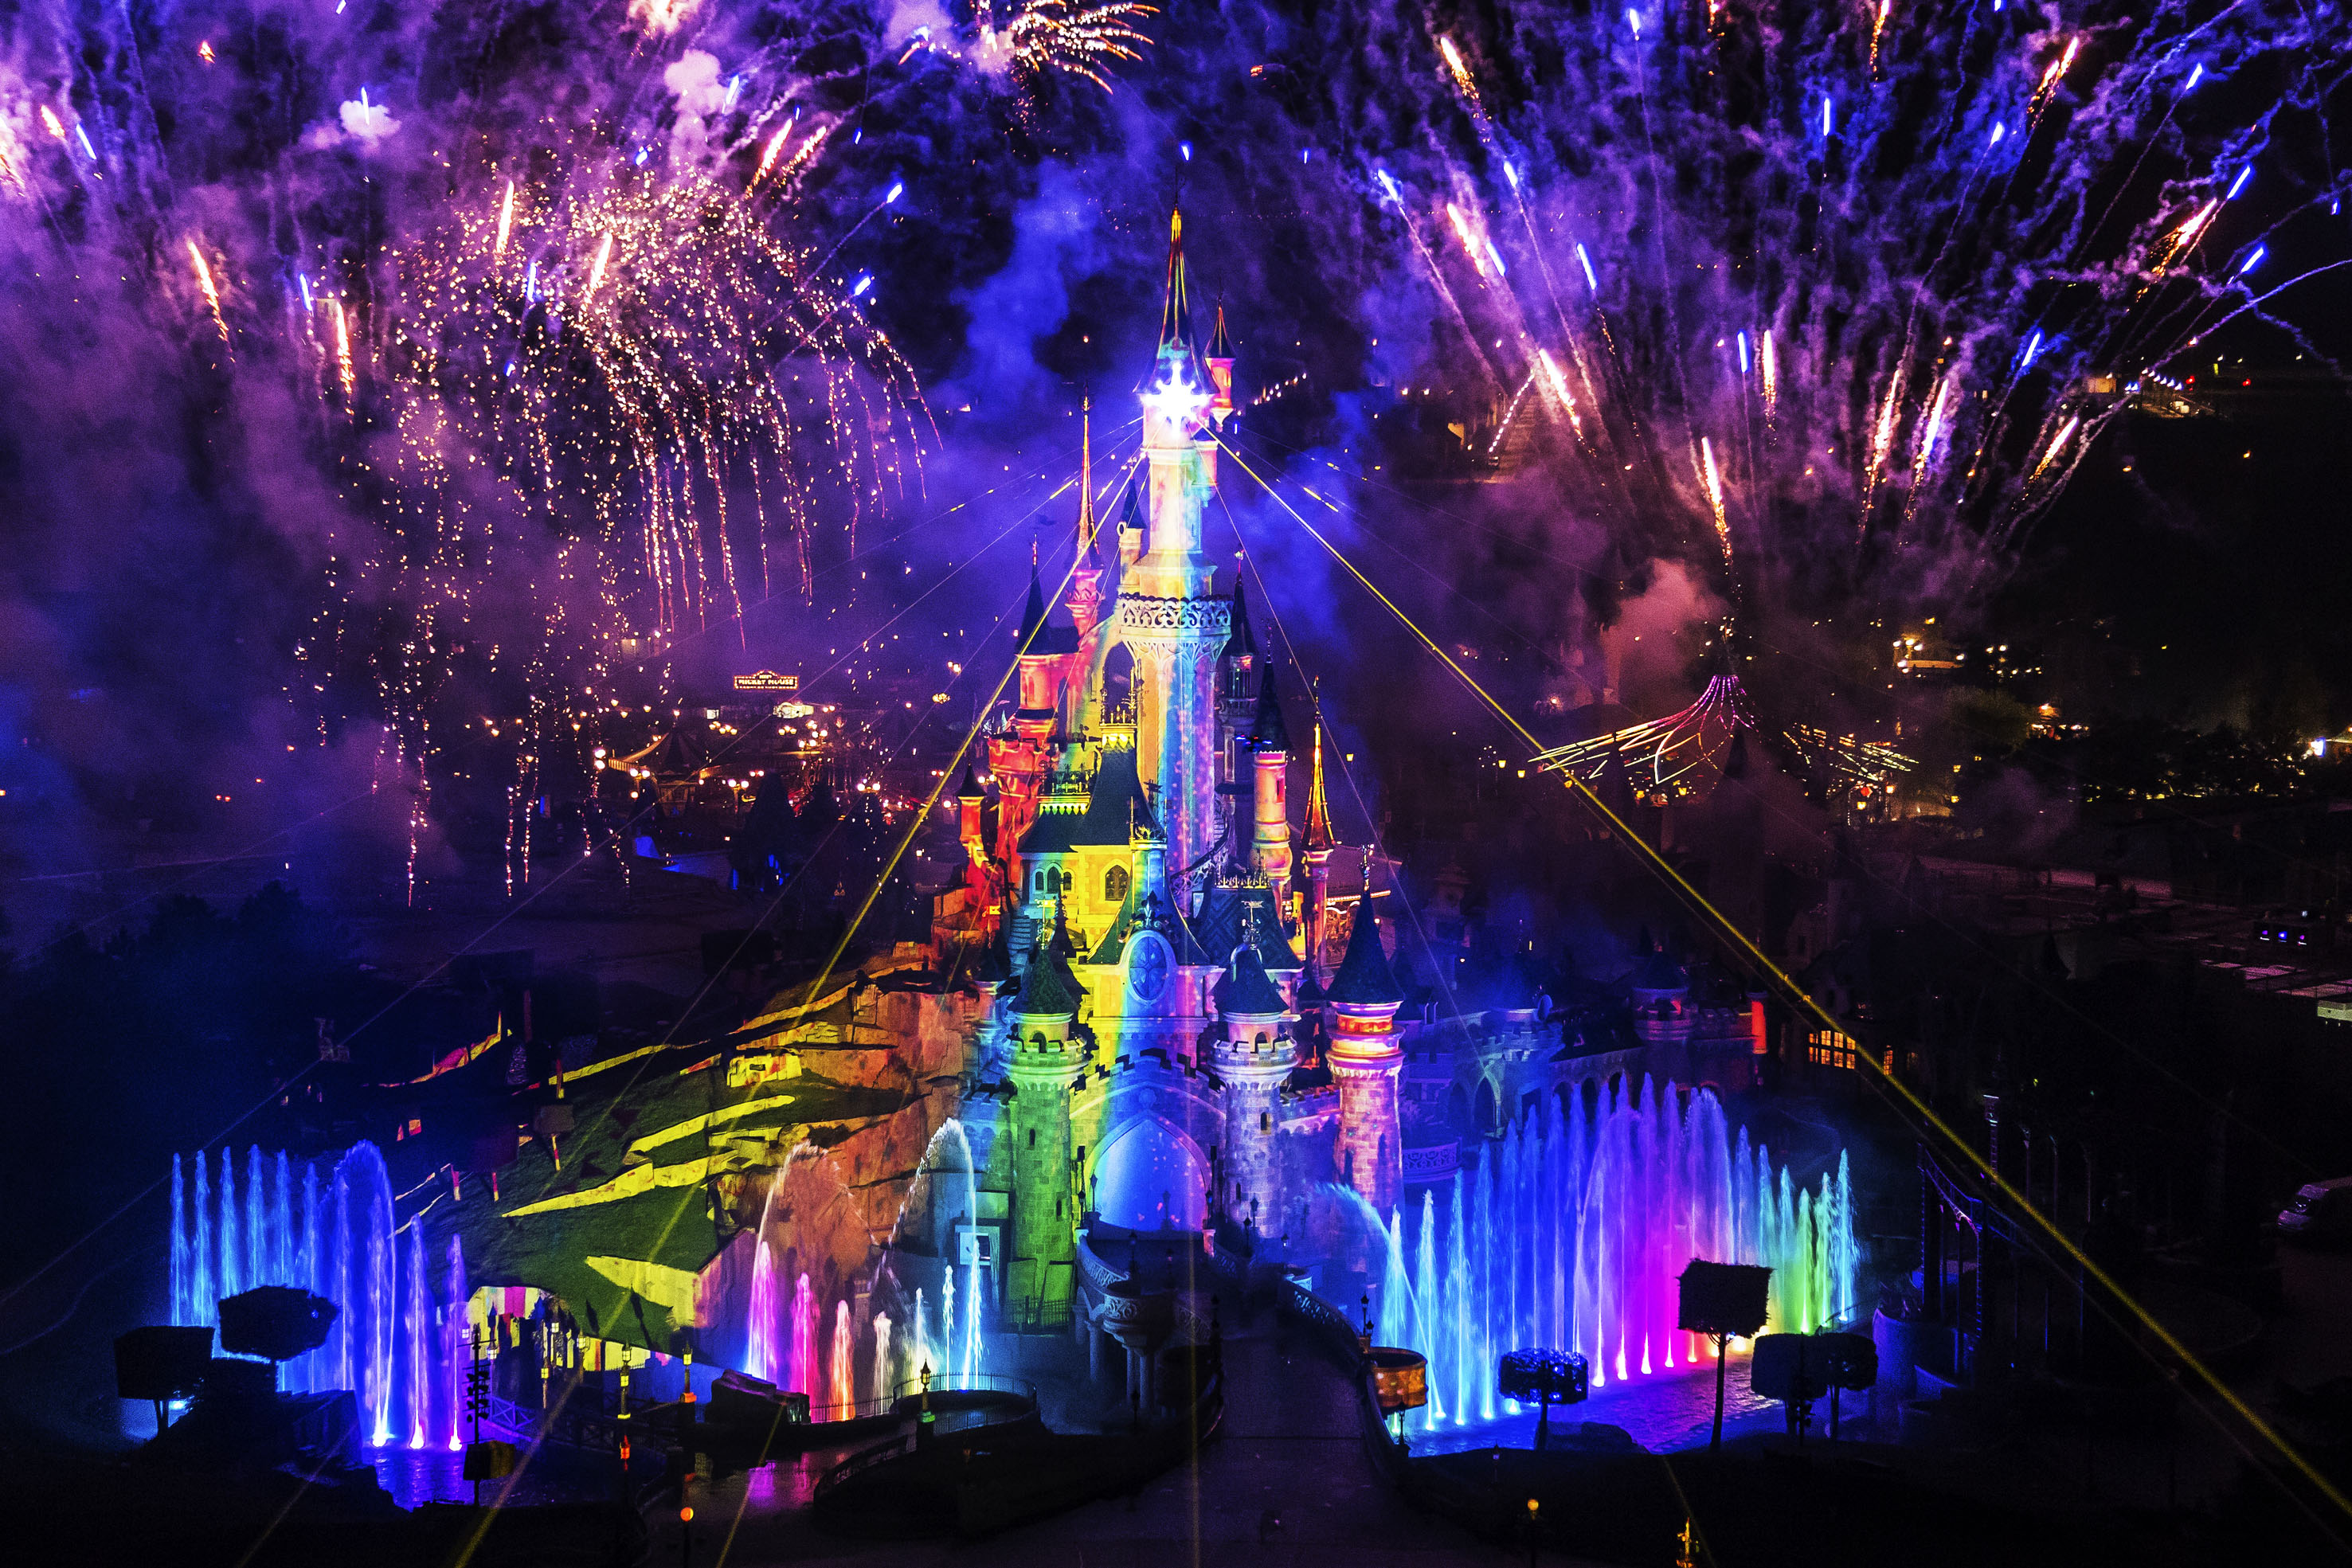 Disneyland Paris Disney Dreams spectacle night time show spectacular